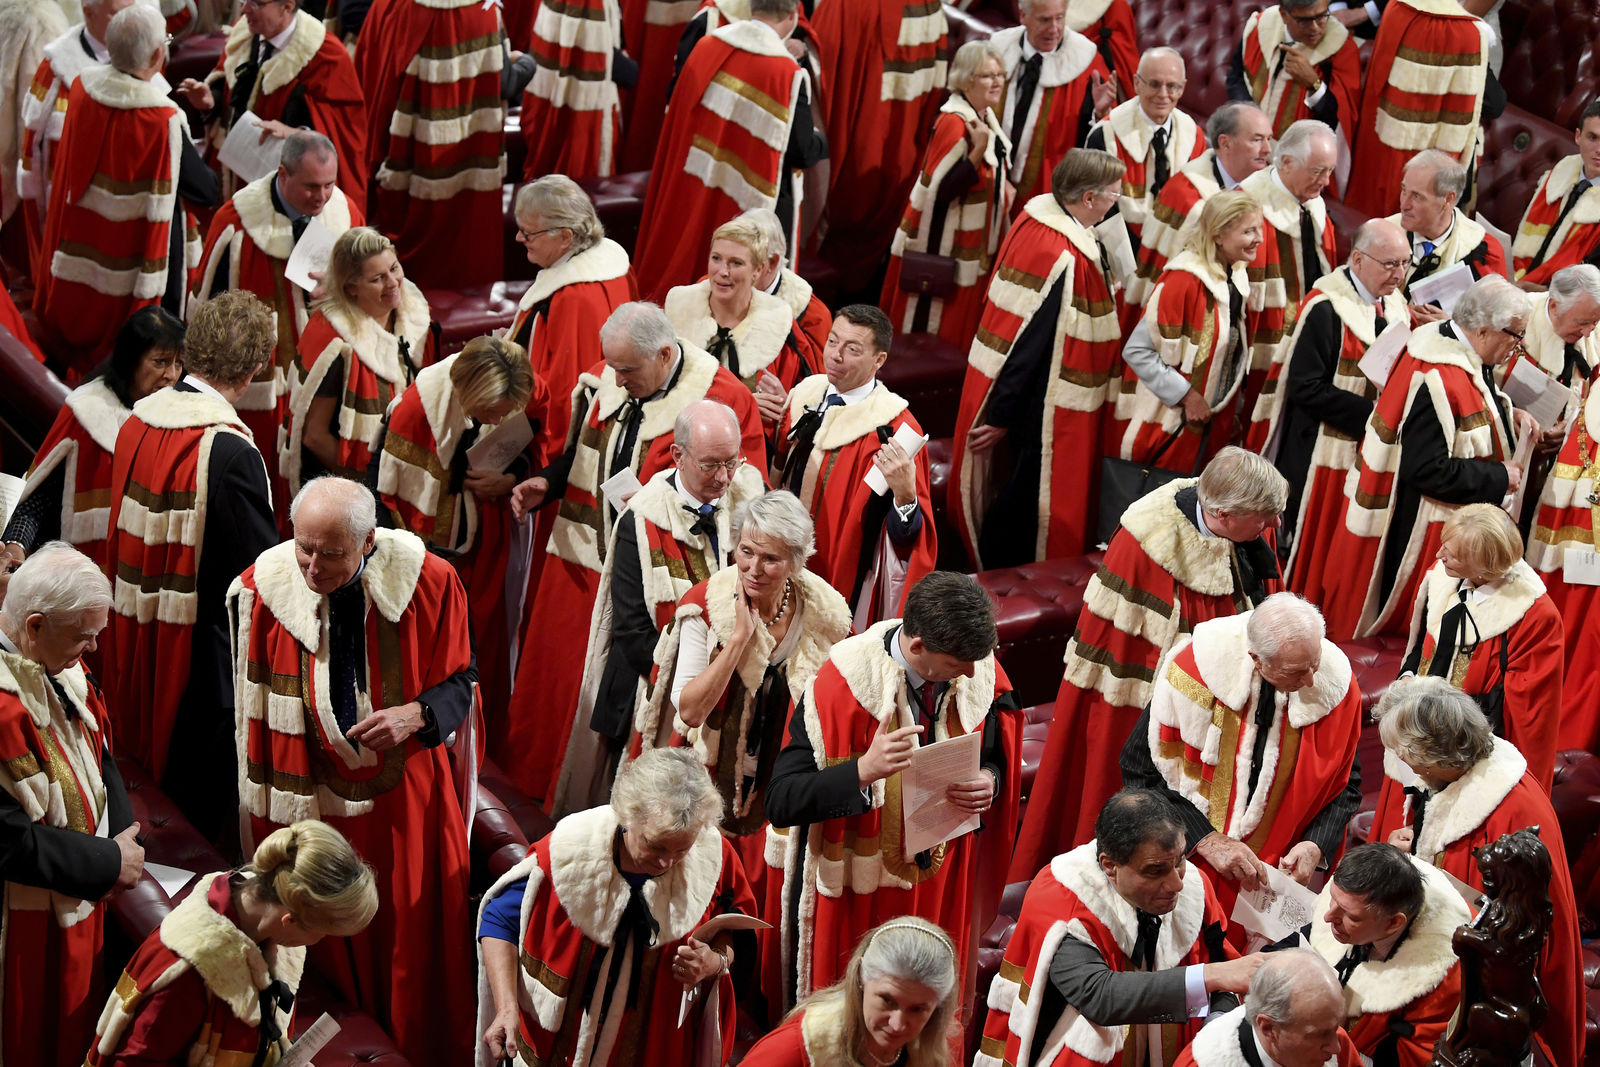 Guests in the House of Lords attend the official State Opening of Parliament in London, Monday Oct. 14, 2019. (Toby Melville/Pool via AP)